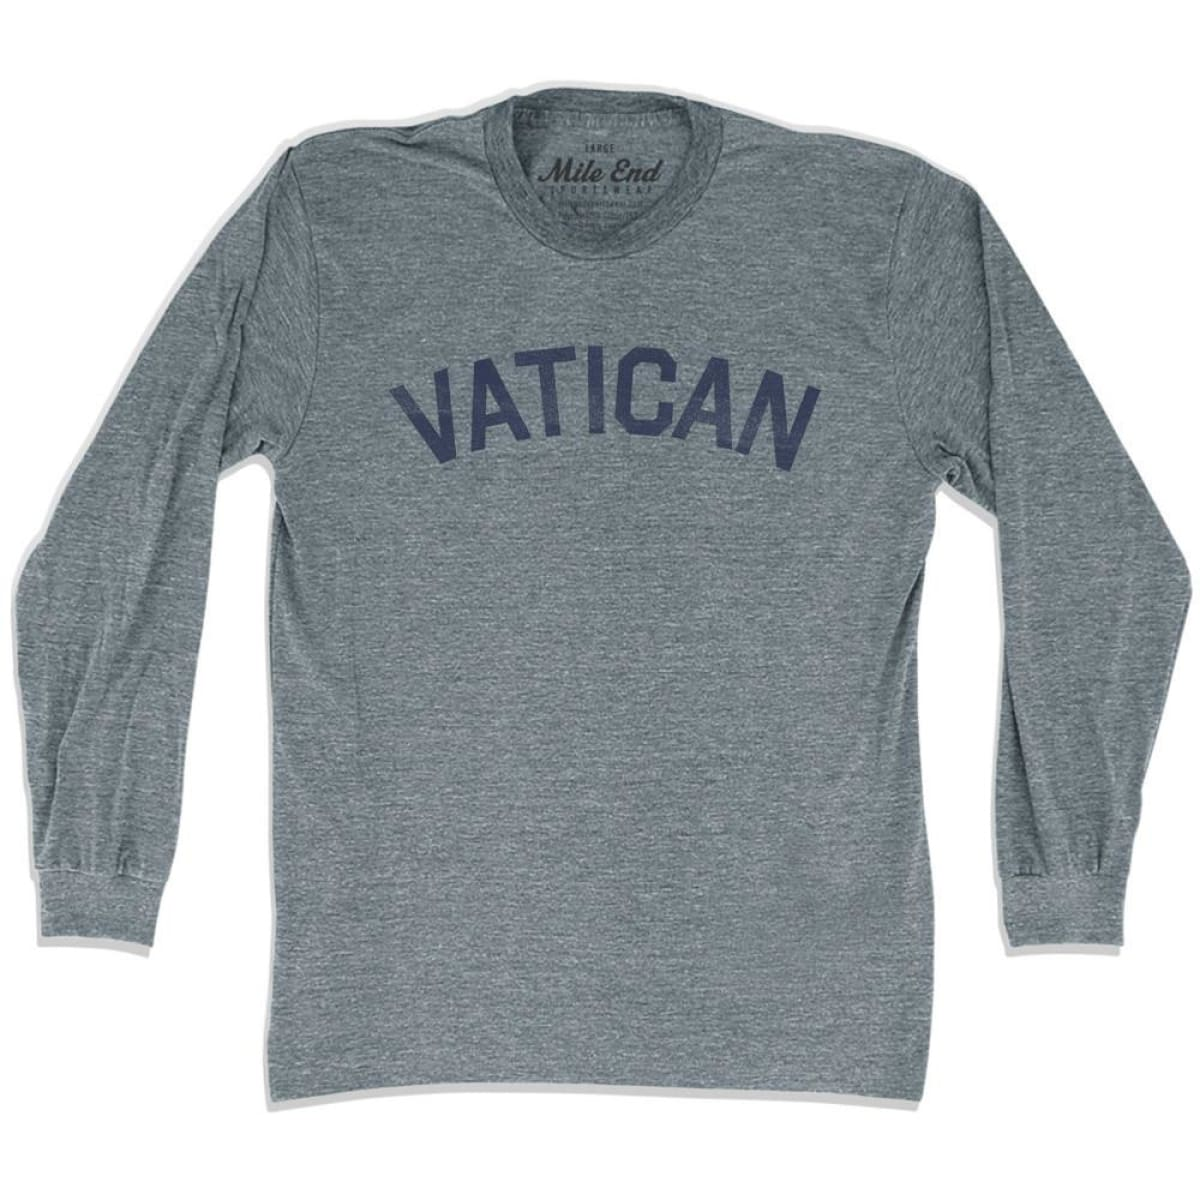 Vatican City City Vintage Long Sleeve T-shirt - Athletic Grey / Adult X-Small - Mile End City